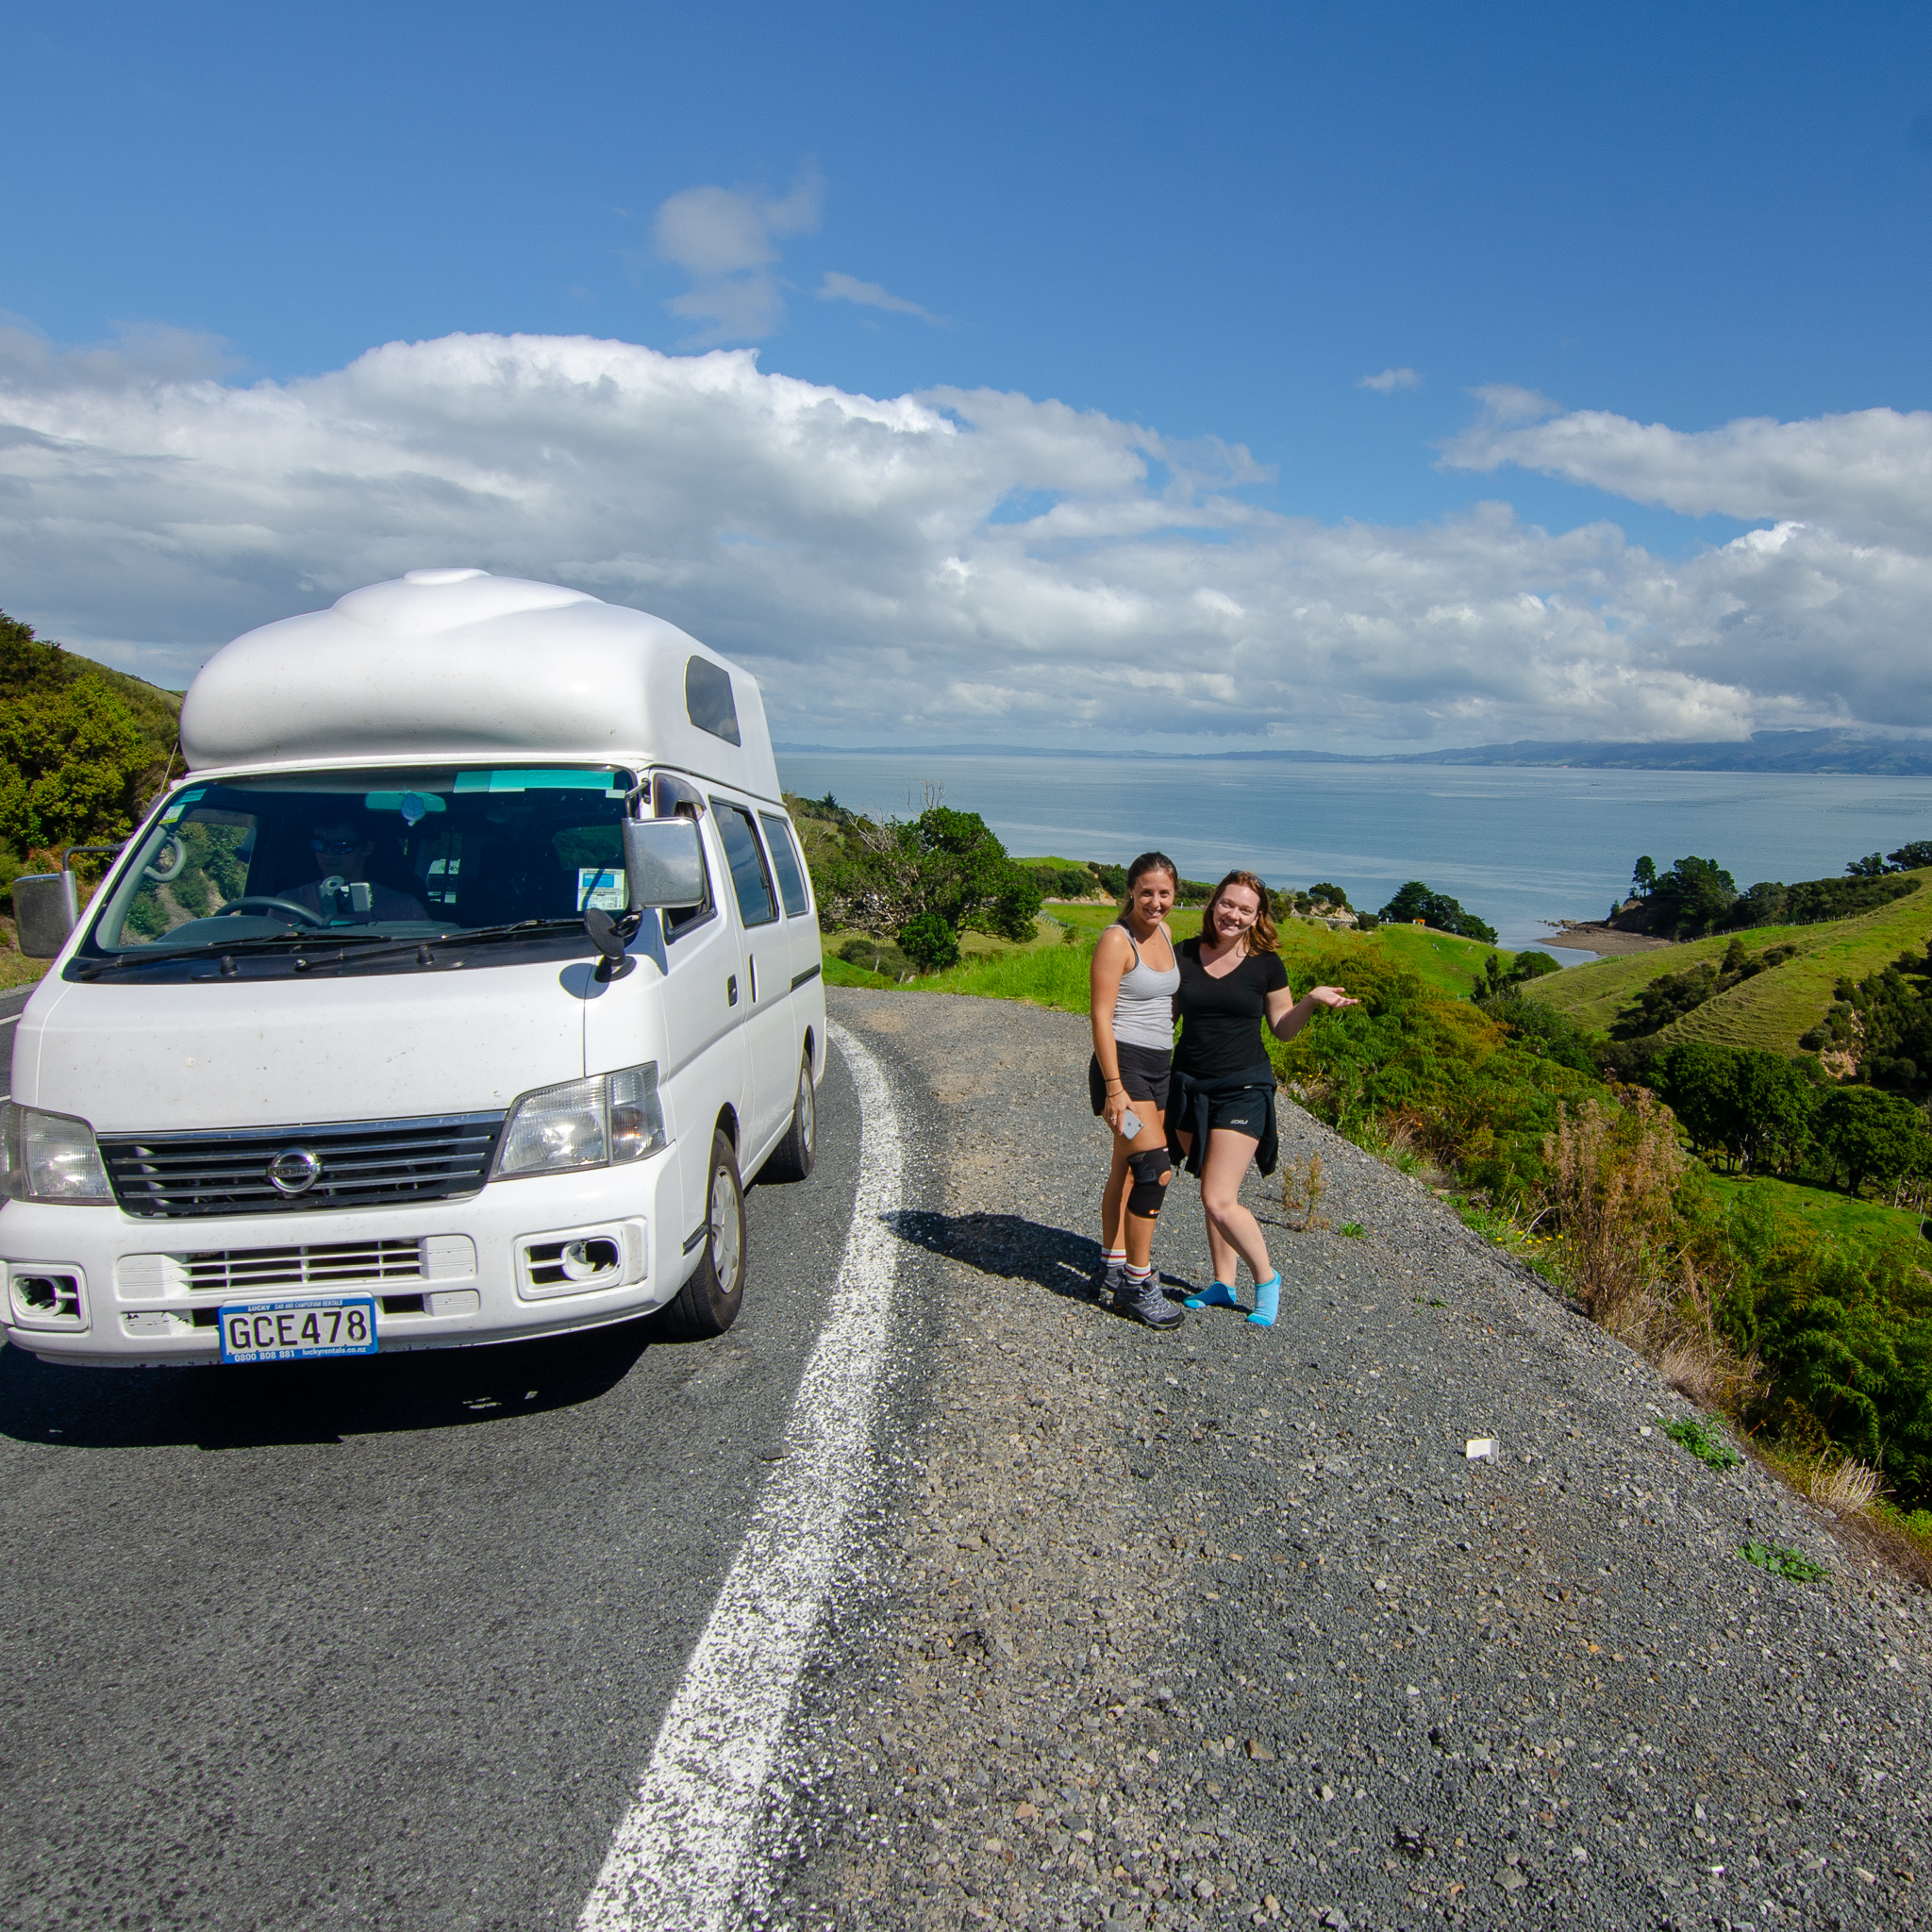 Two women stand alongside a white campervan parked on the road, with lush green rolling hills and icy blue water in the background